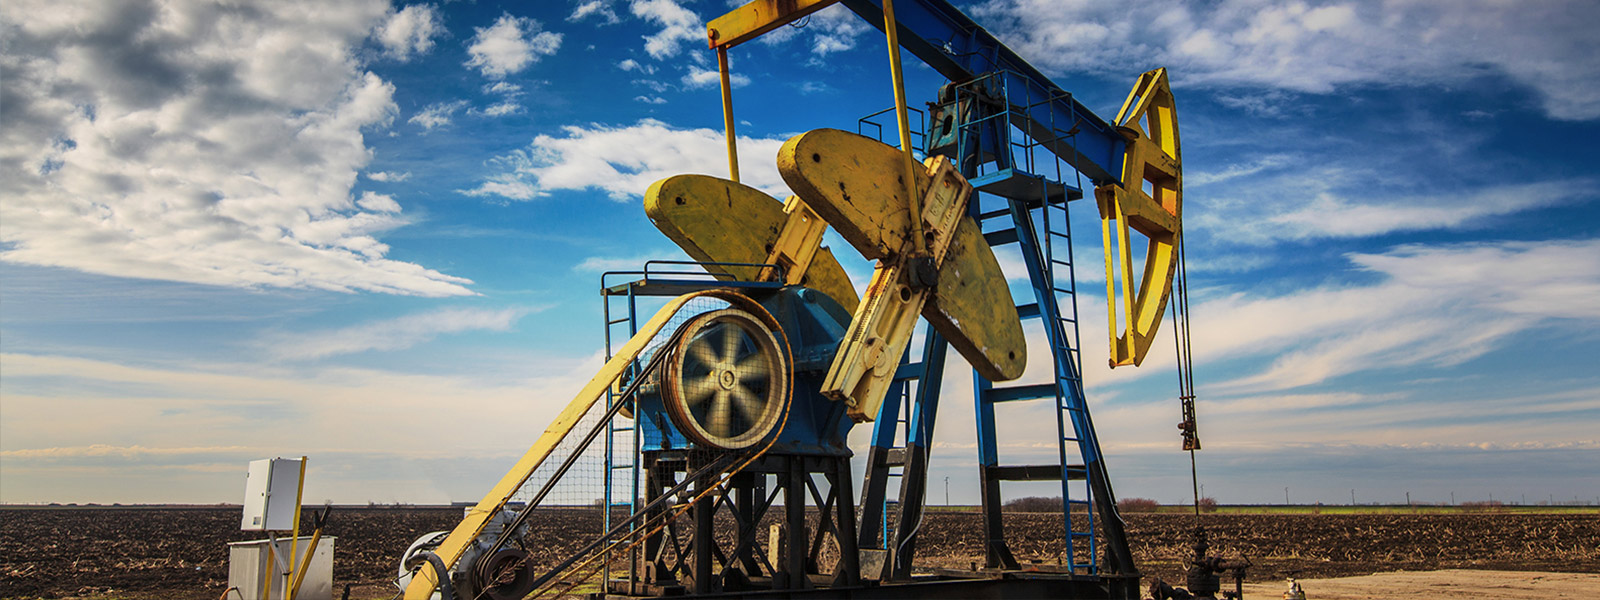 Flint Hills Resources Wants to Refine More Texas Crude